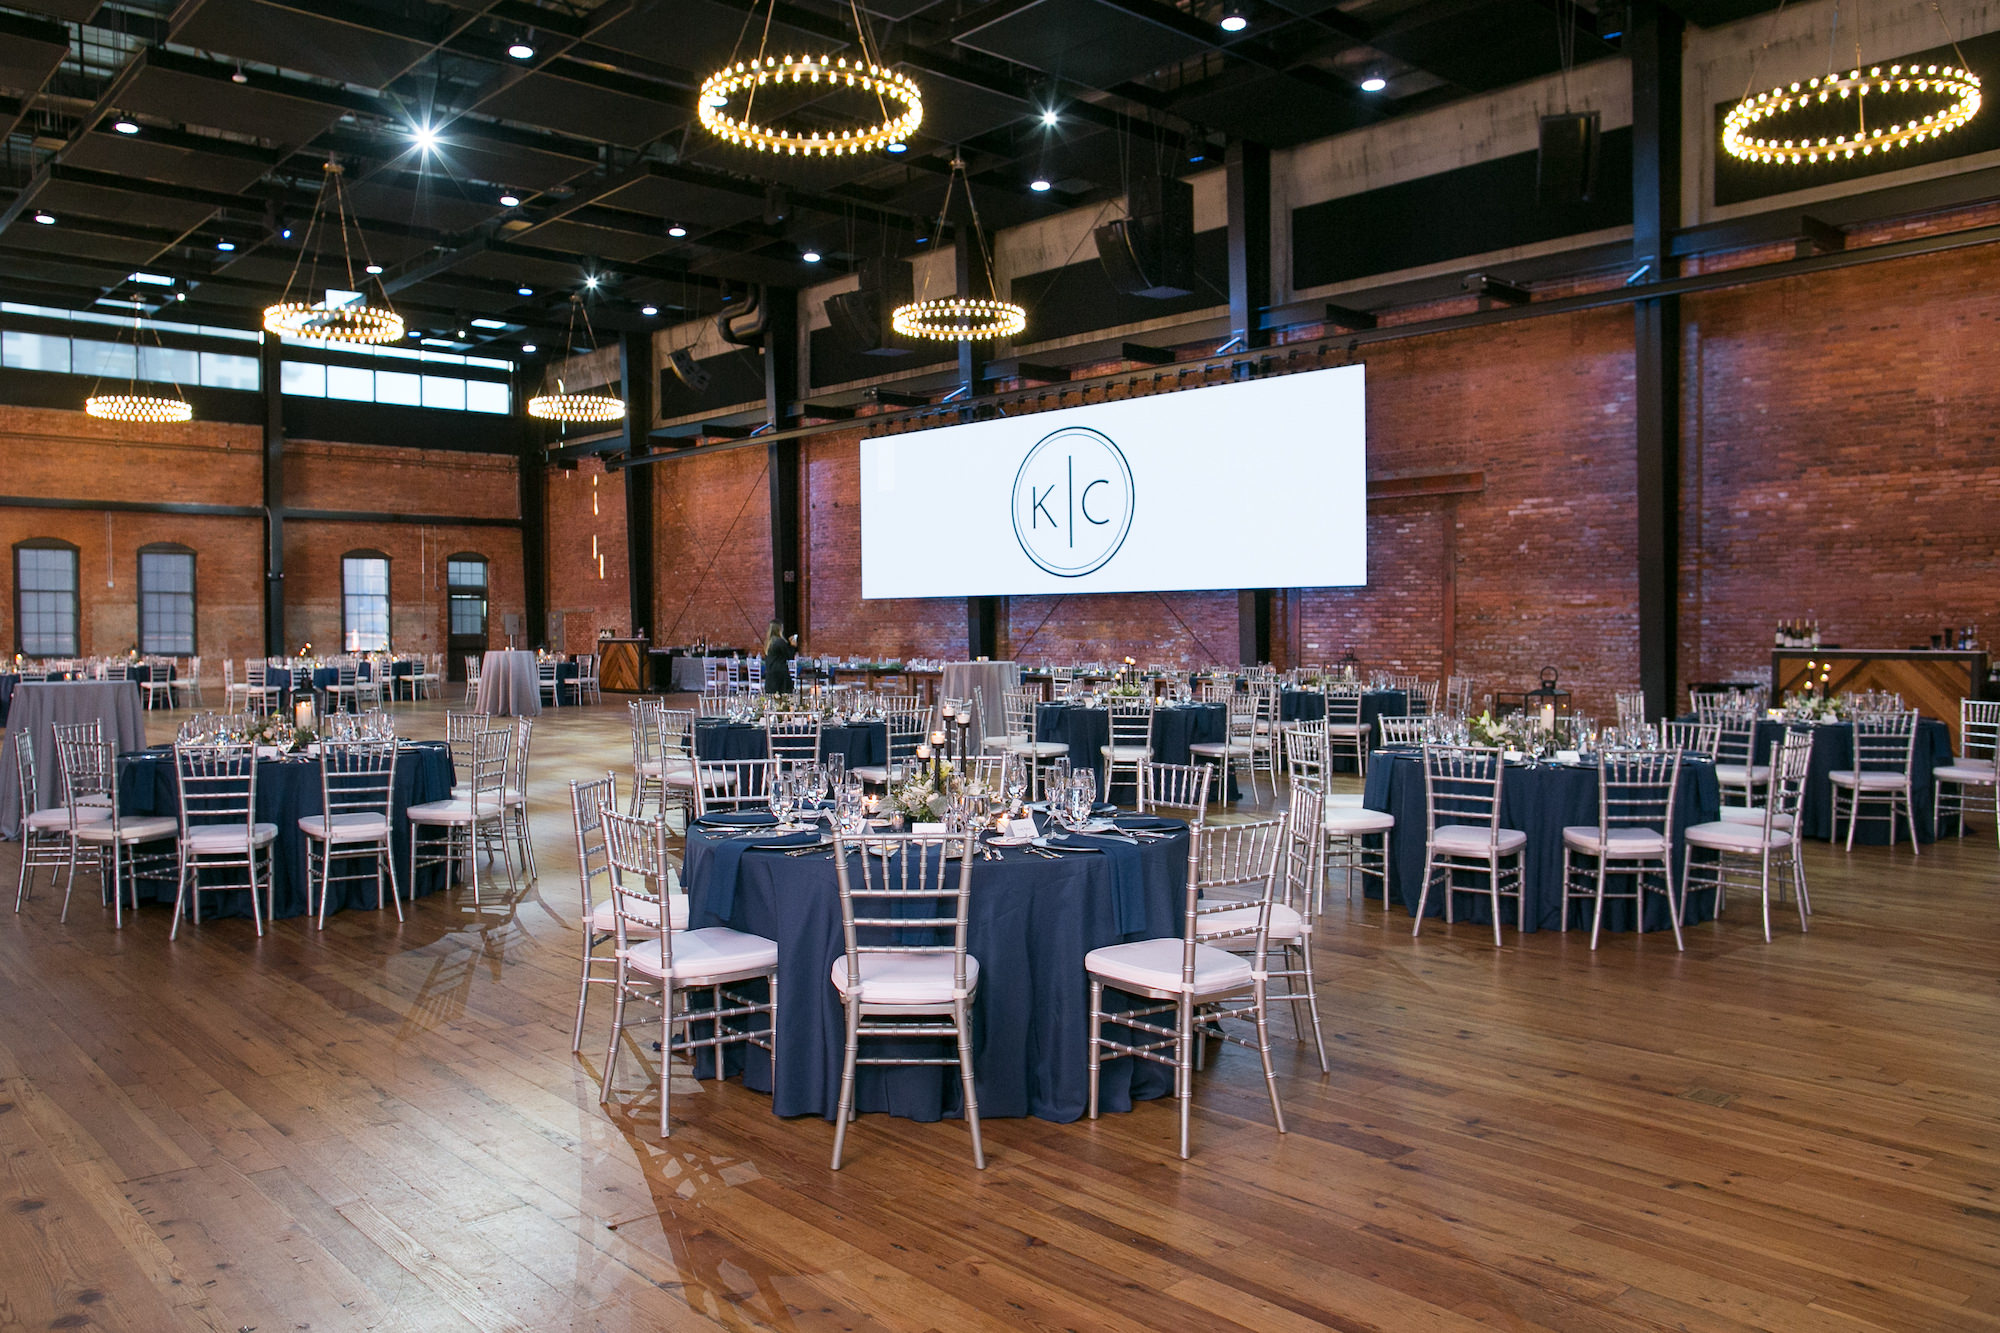 Modern Wedding Reception Decor, Round Tables with Navy Blue Linens, Silver Chiavari Chairs, Round Chandeliers, Custom Monogram Projection   Tampa Bay Wedding Photographer Carrie Wildes Photography   Wedding Planner Love Lee Lane   Historic Industrial Red Brick Wedding Reception Venue Armature Works   Chair and Table Rentals A Chair Affair